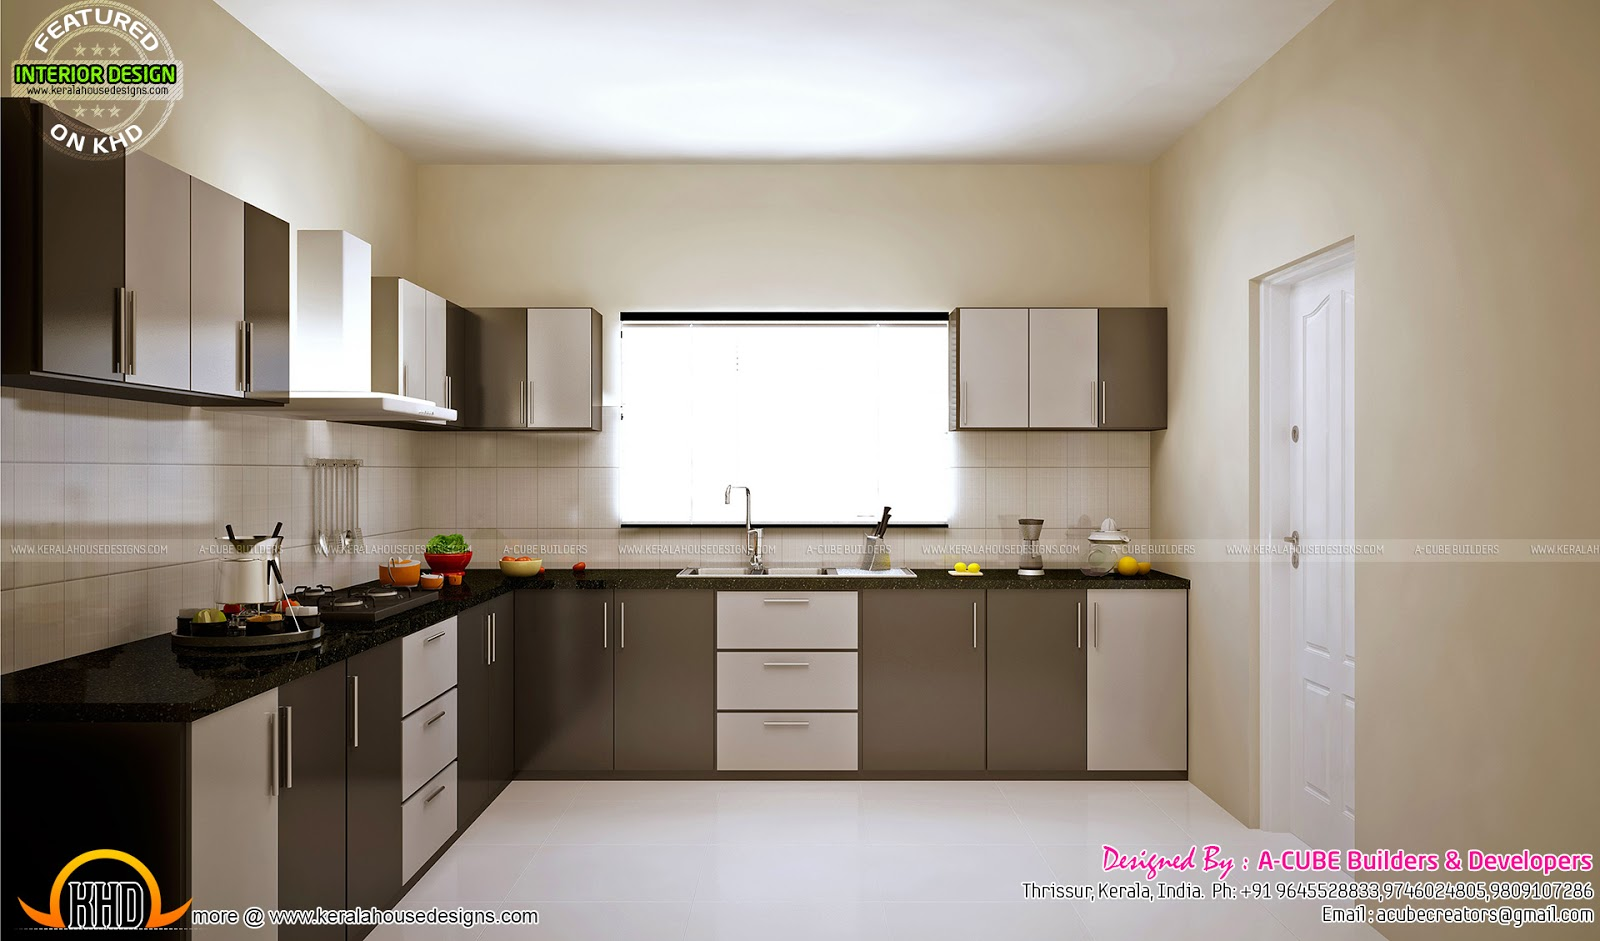 Kitchen and master bedroom designs kerala home design for Modern kitchen designs in kerala